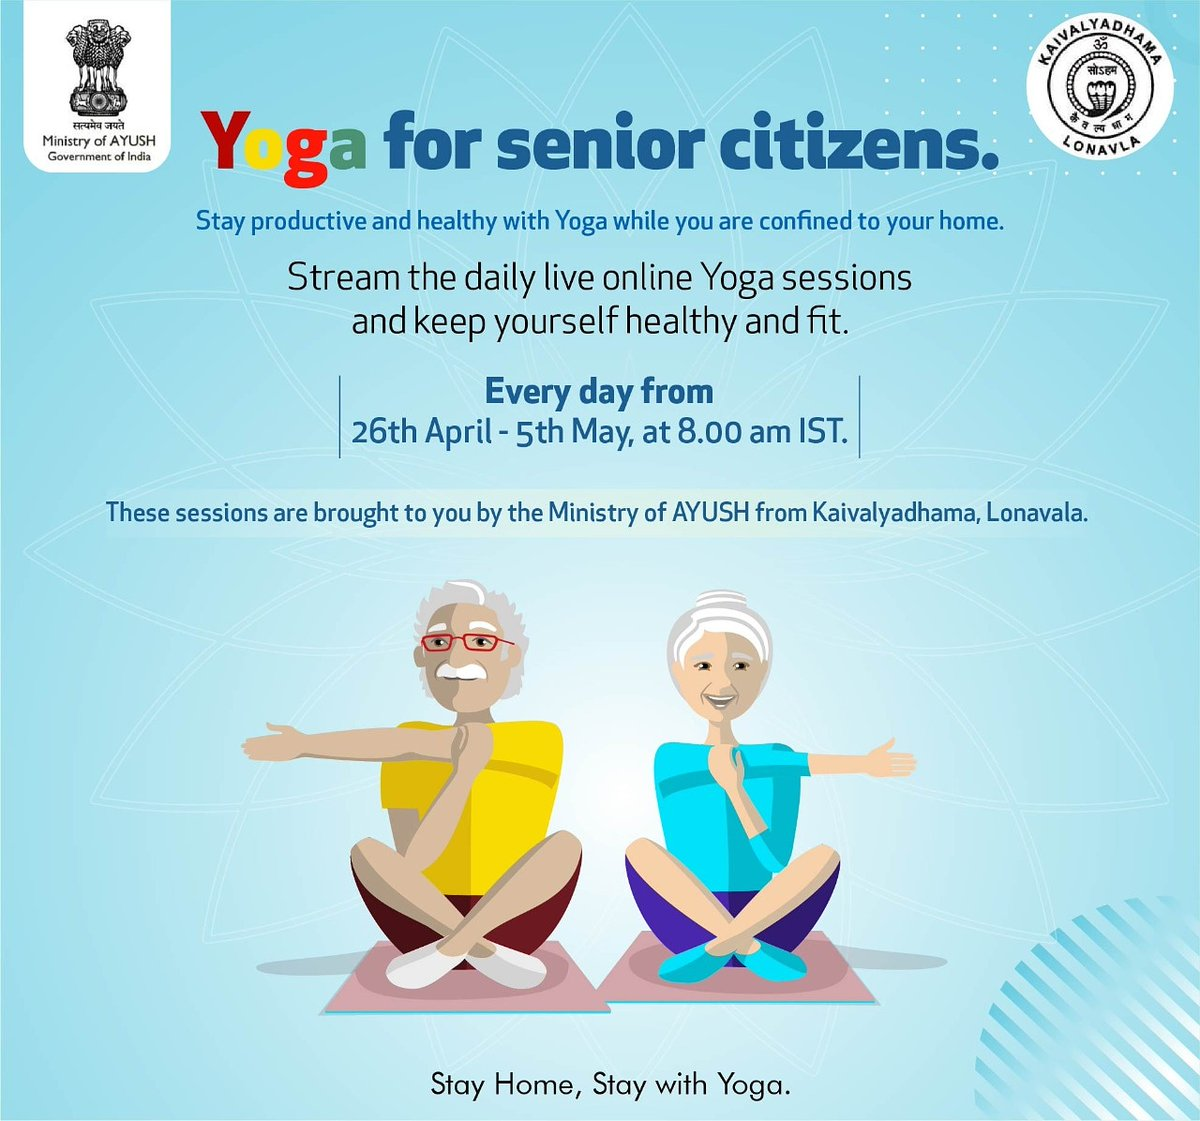 Ministry Of Ayush On Twitter The Ministry Of Ayush Is Happy To Present Yoga Sessions For Senior Citizens Practice Yoga Daily With The Help Of These Videos Brought To You By The